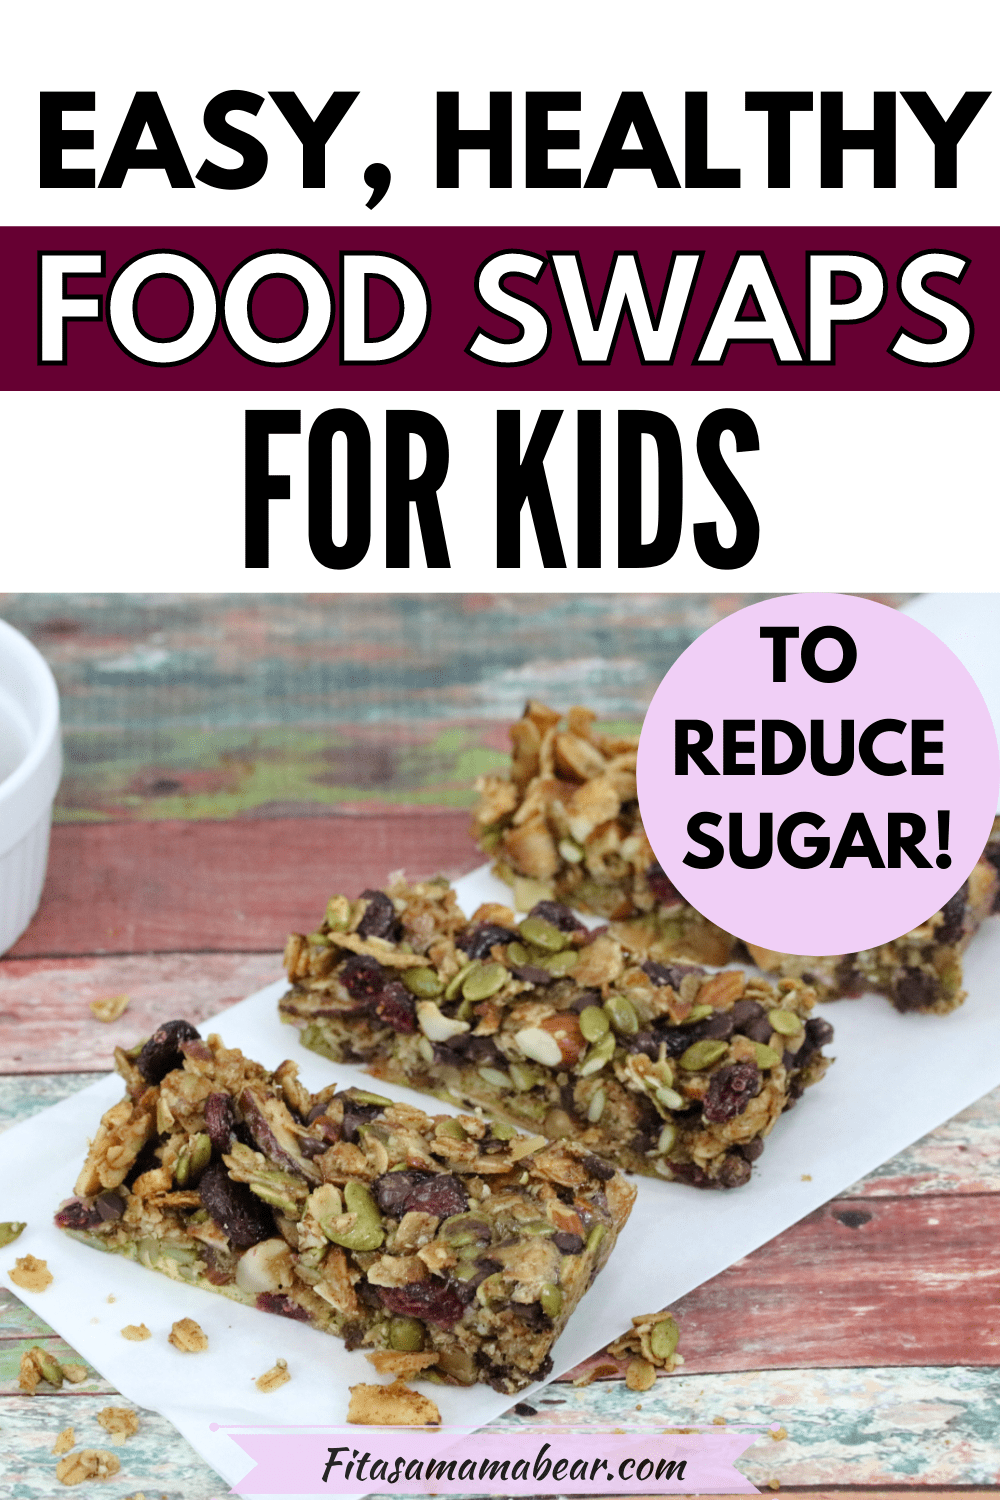 Pinterest image with text: homemade granola bars and text about food swaps for toddlers